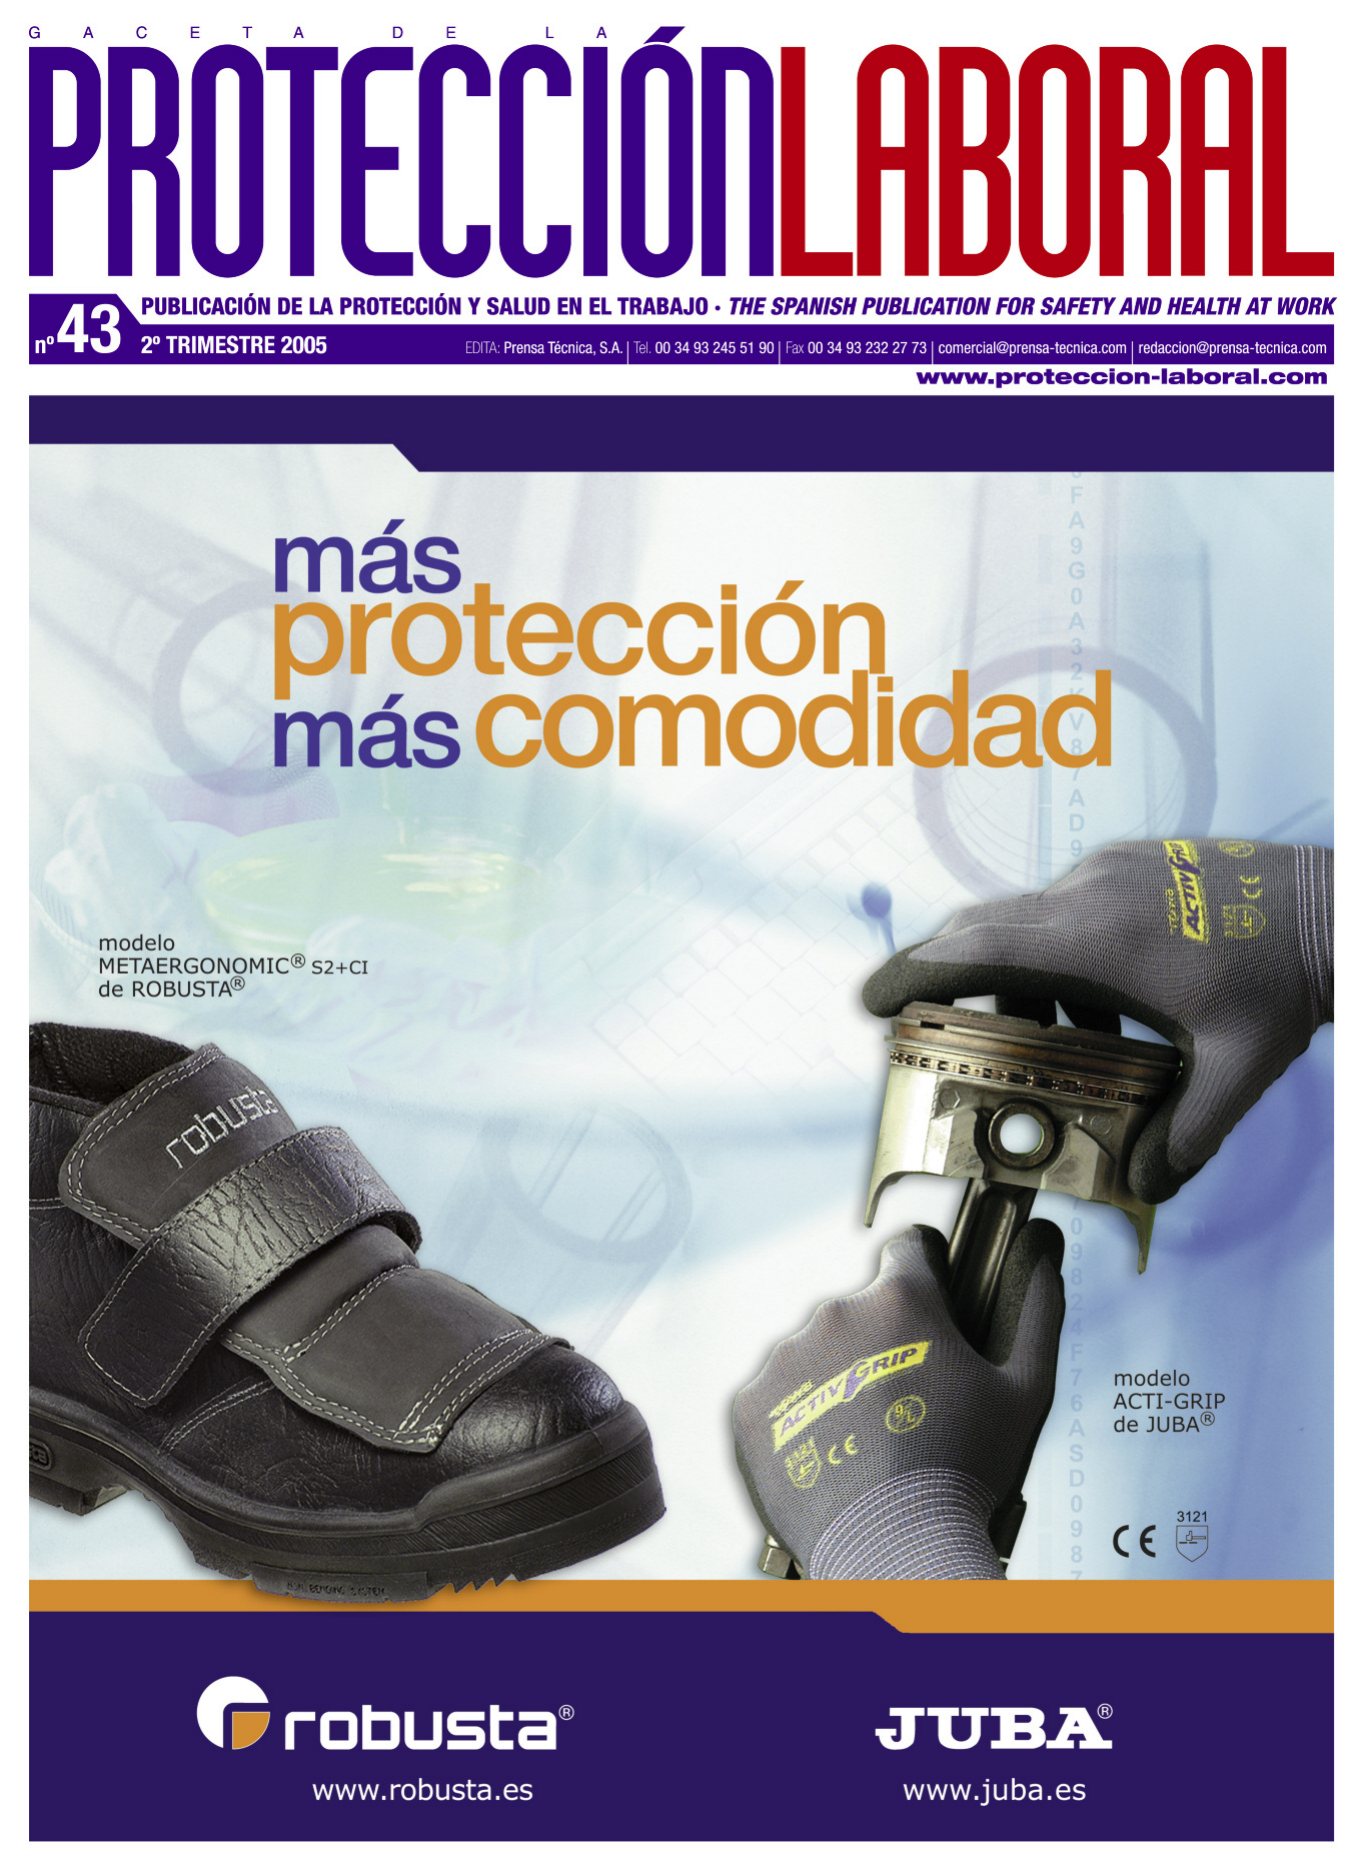 Proteccin Laboral 43 Occupational safety, health and